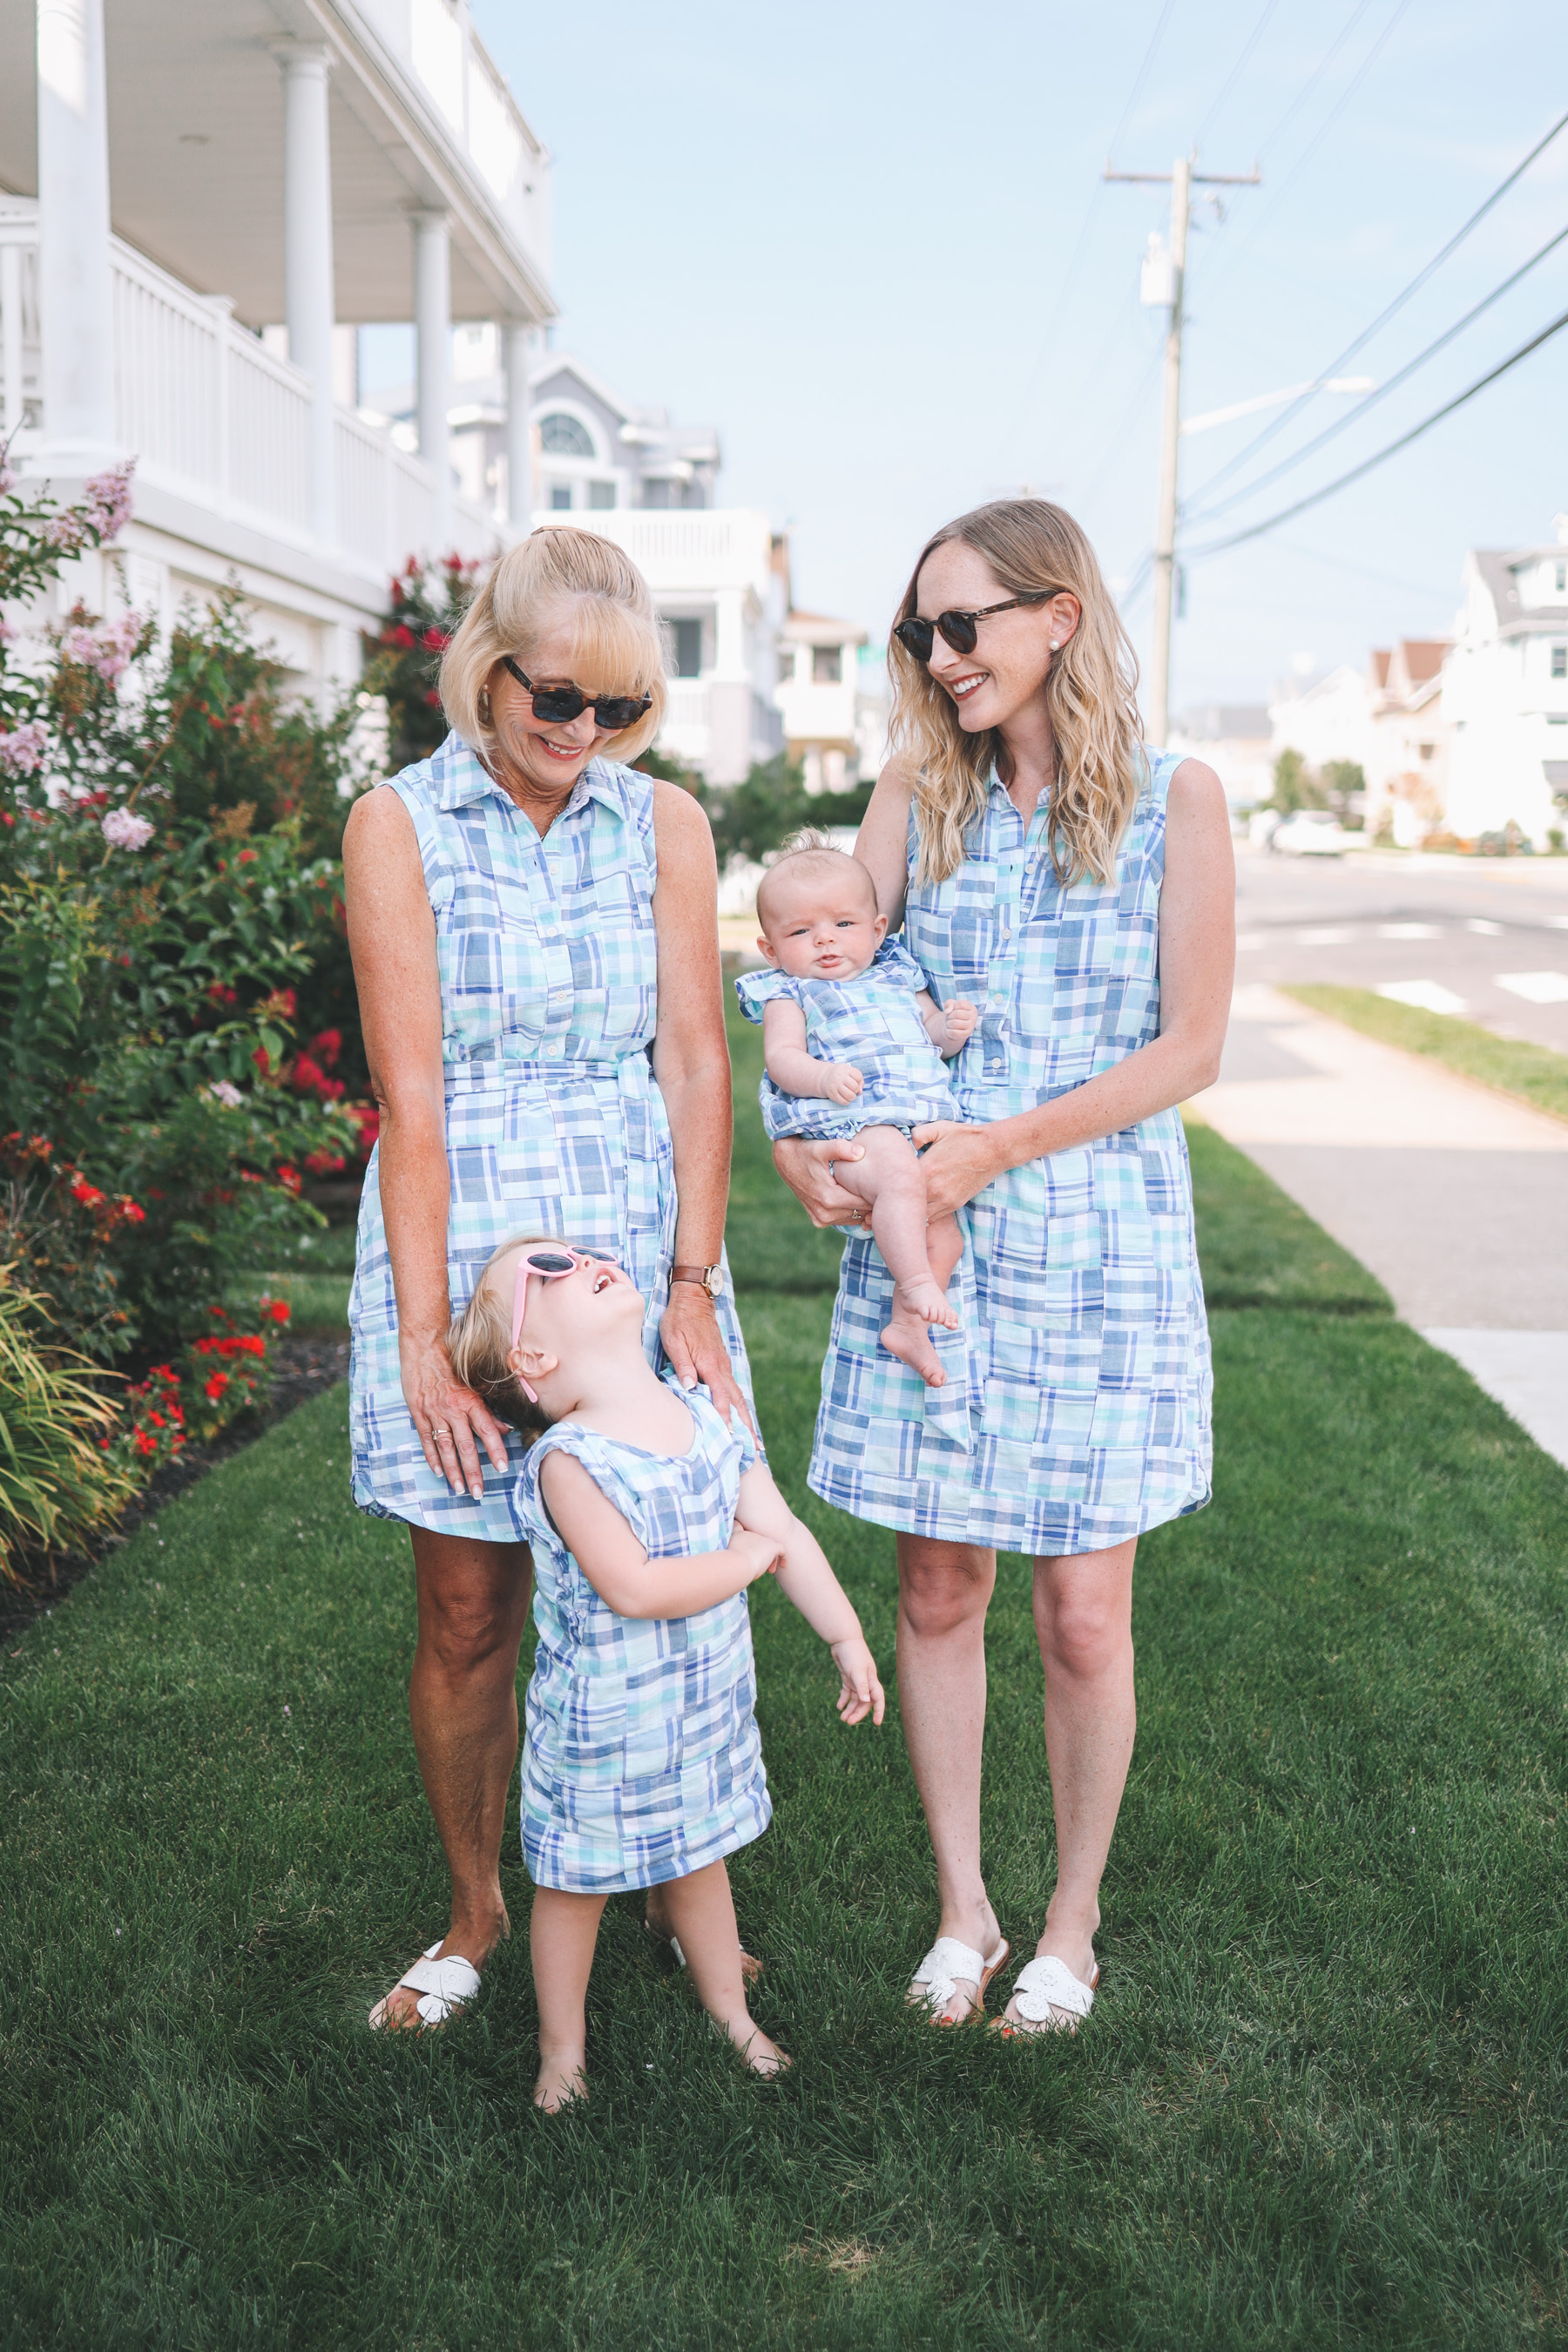 The Larkin girls pose in matchy-matchy madras